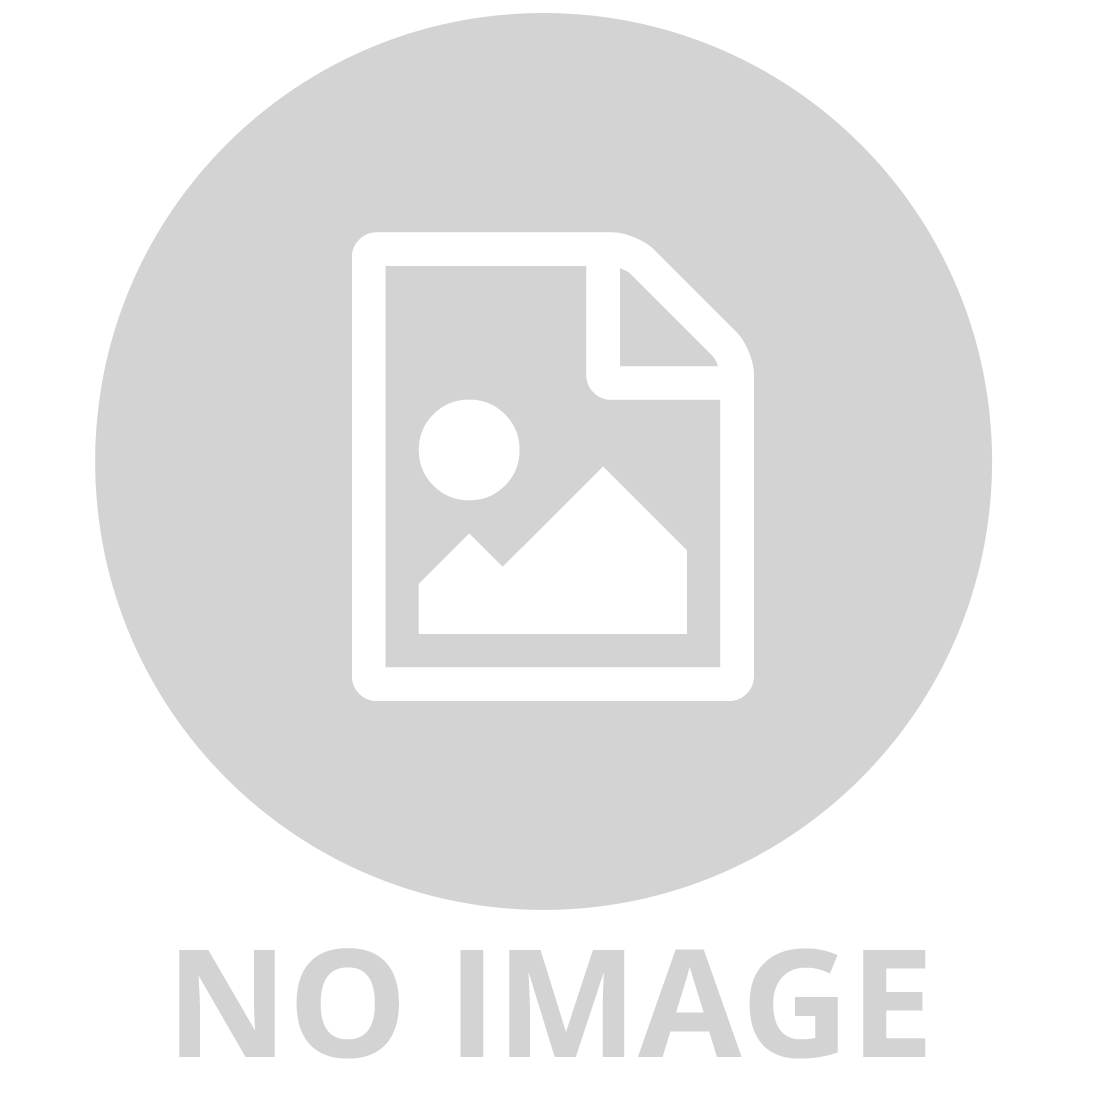 MENG 1/35 BARRICADES AND HIGHWAY GUARDRAILS